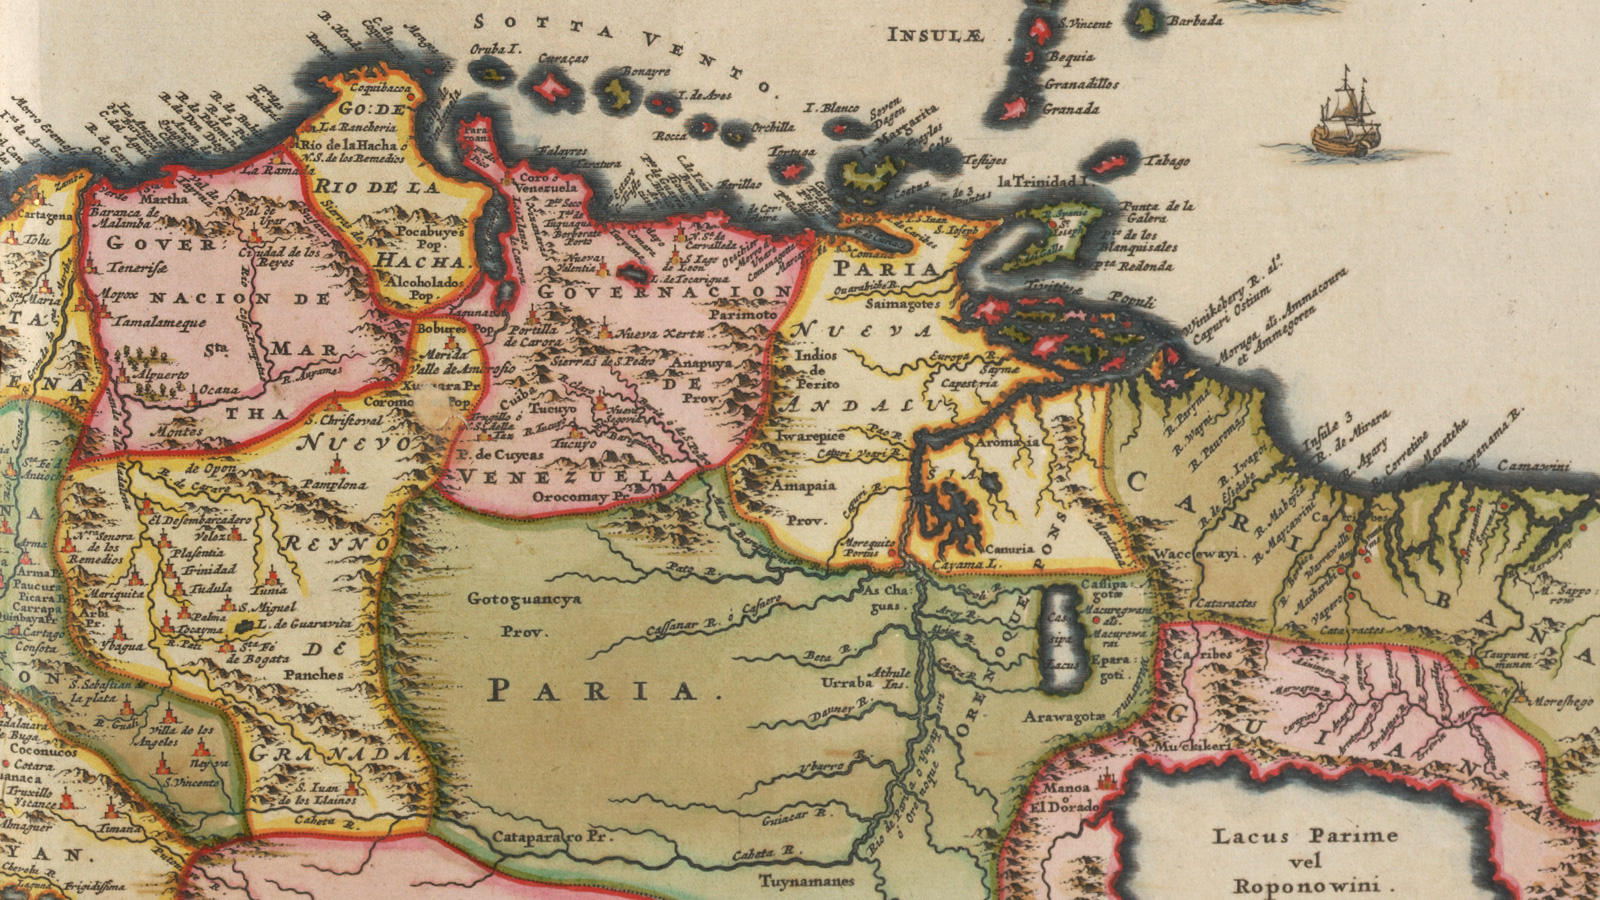 Oroonoko: historical and political contexts - The British Library